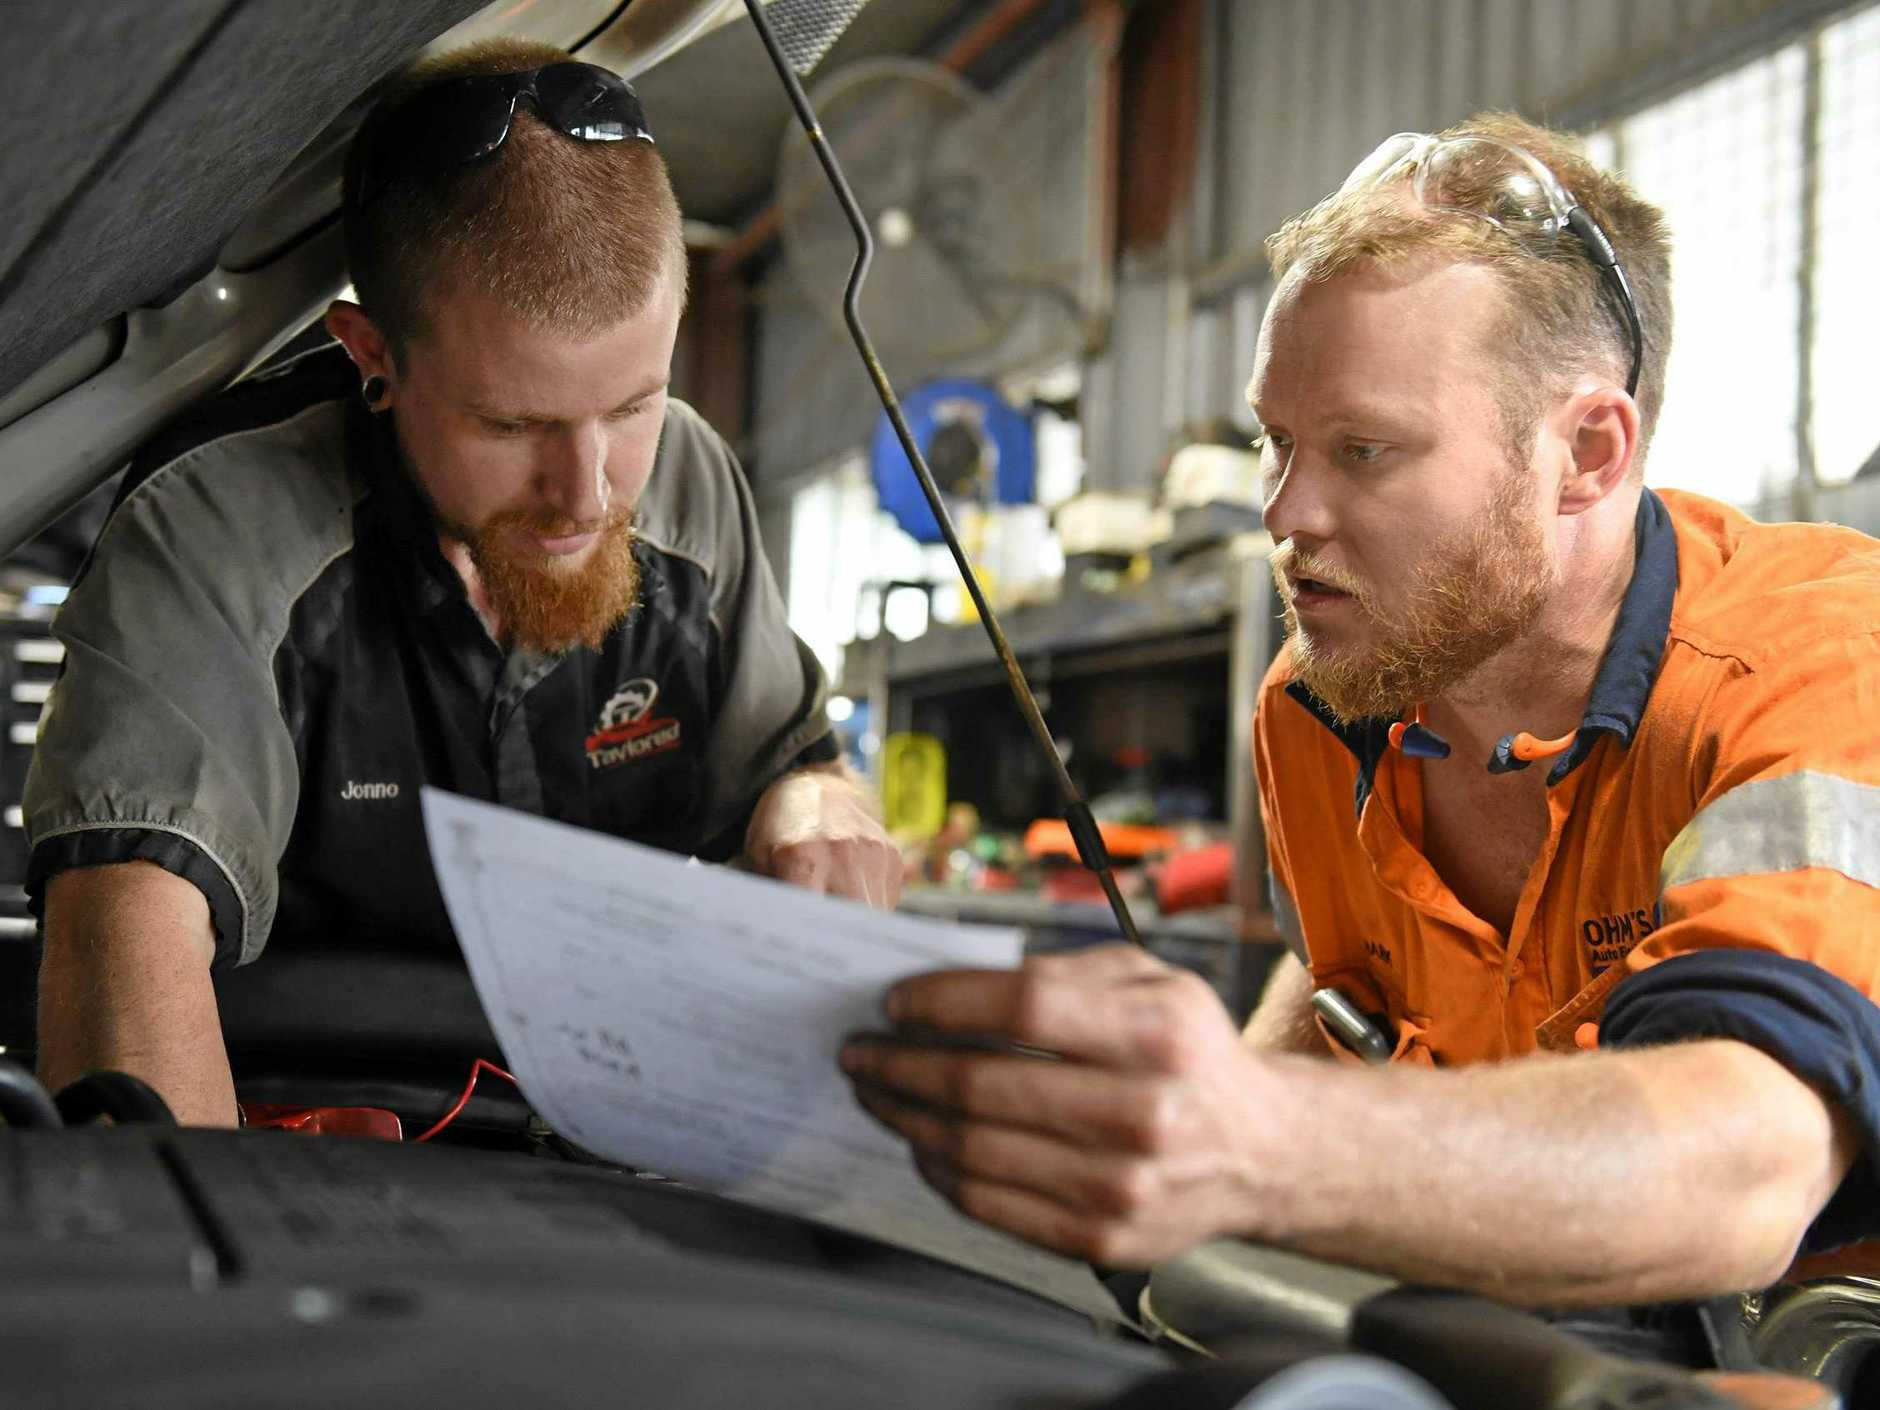 Jonathan Read and Mark Johnston working at Taylored Automotive.